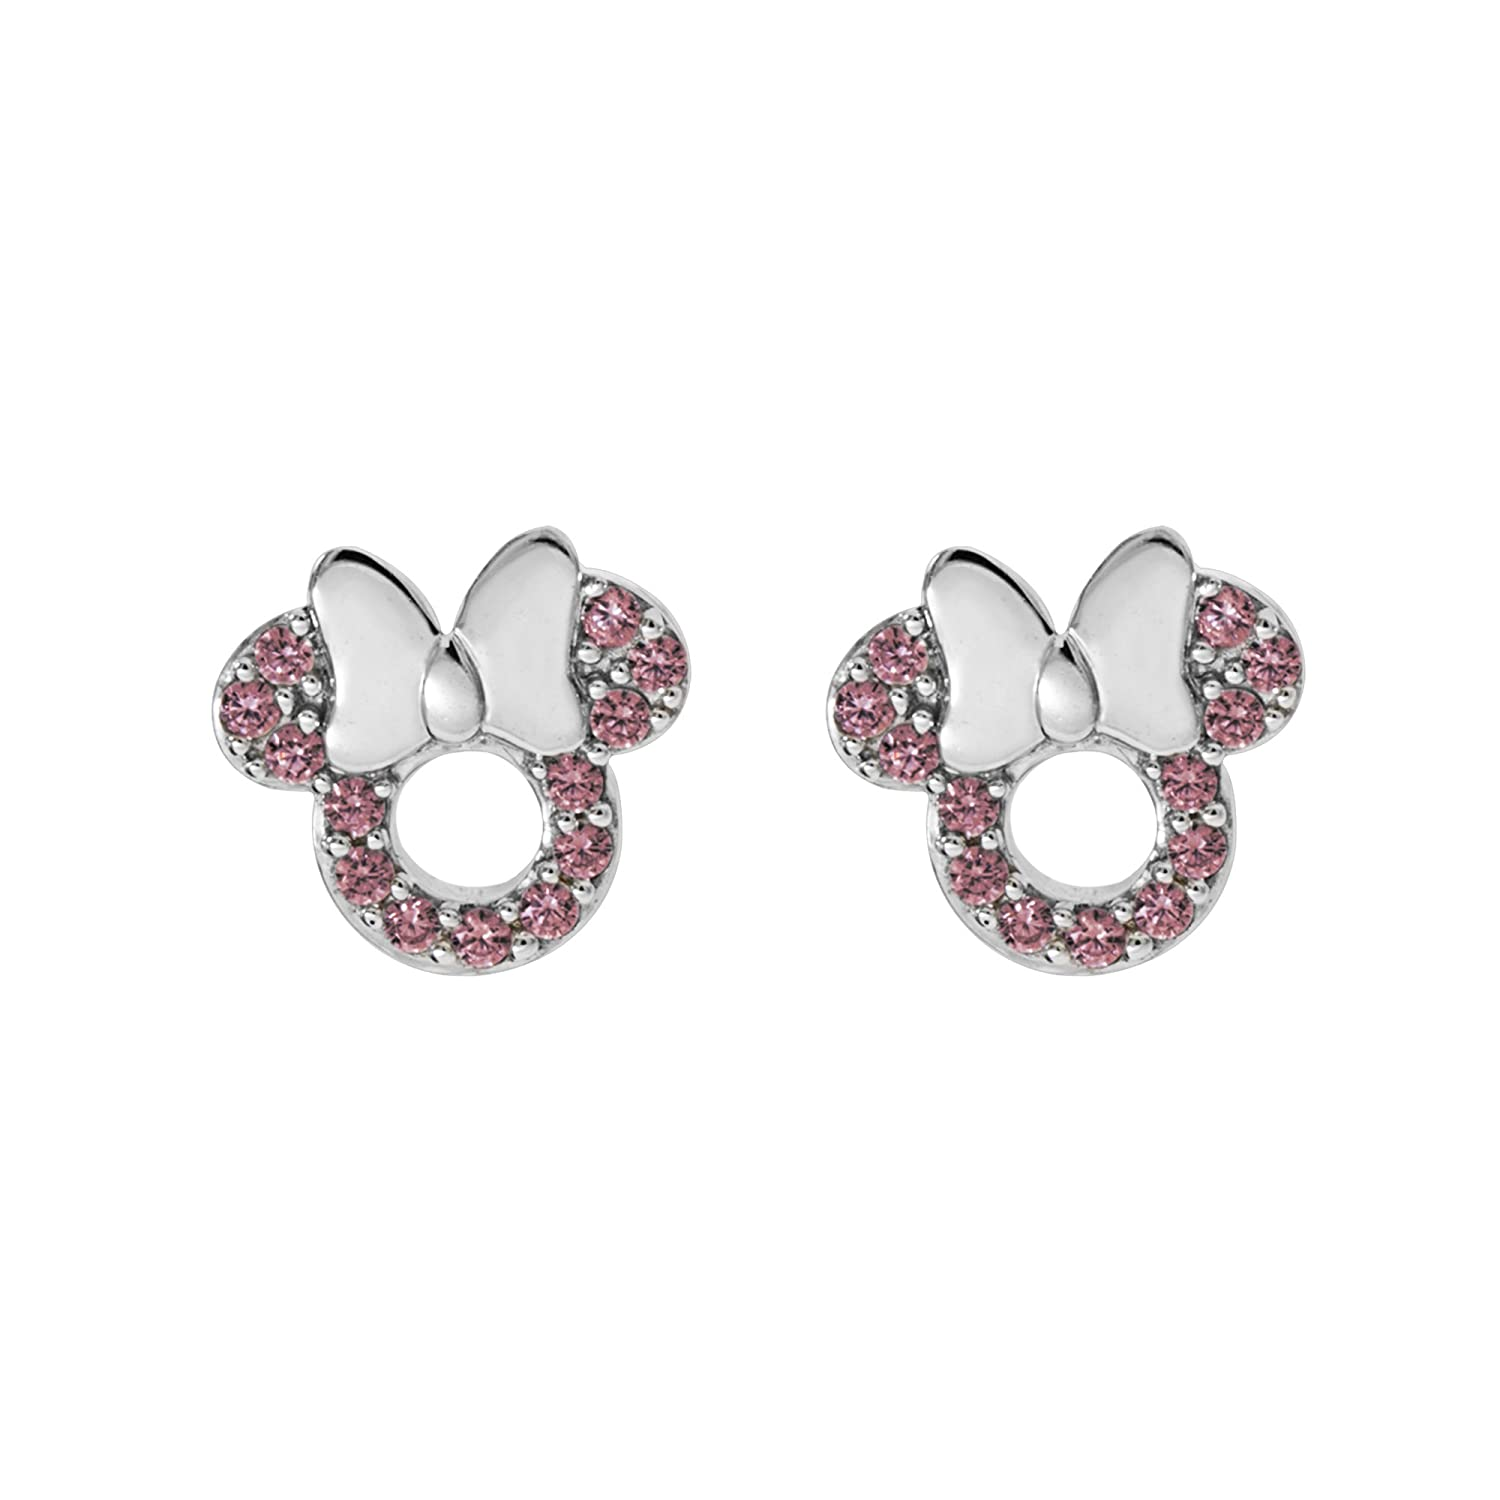 730f40e9d Amazon.com: Disney Minnie Mouse Women Jewelry, Sterling Silver Pink Cubic  Zirconia and Silver Bow Stud Earrings Mickey's 90th Birthday Anniversary:  Jewelry